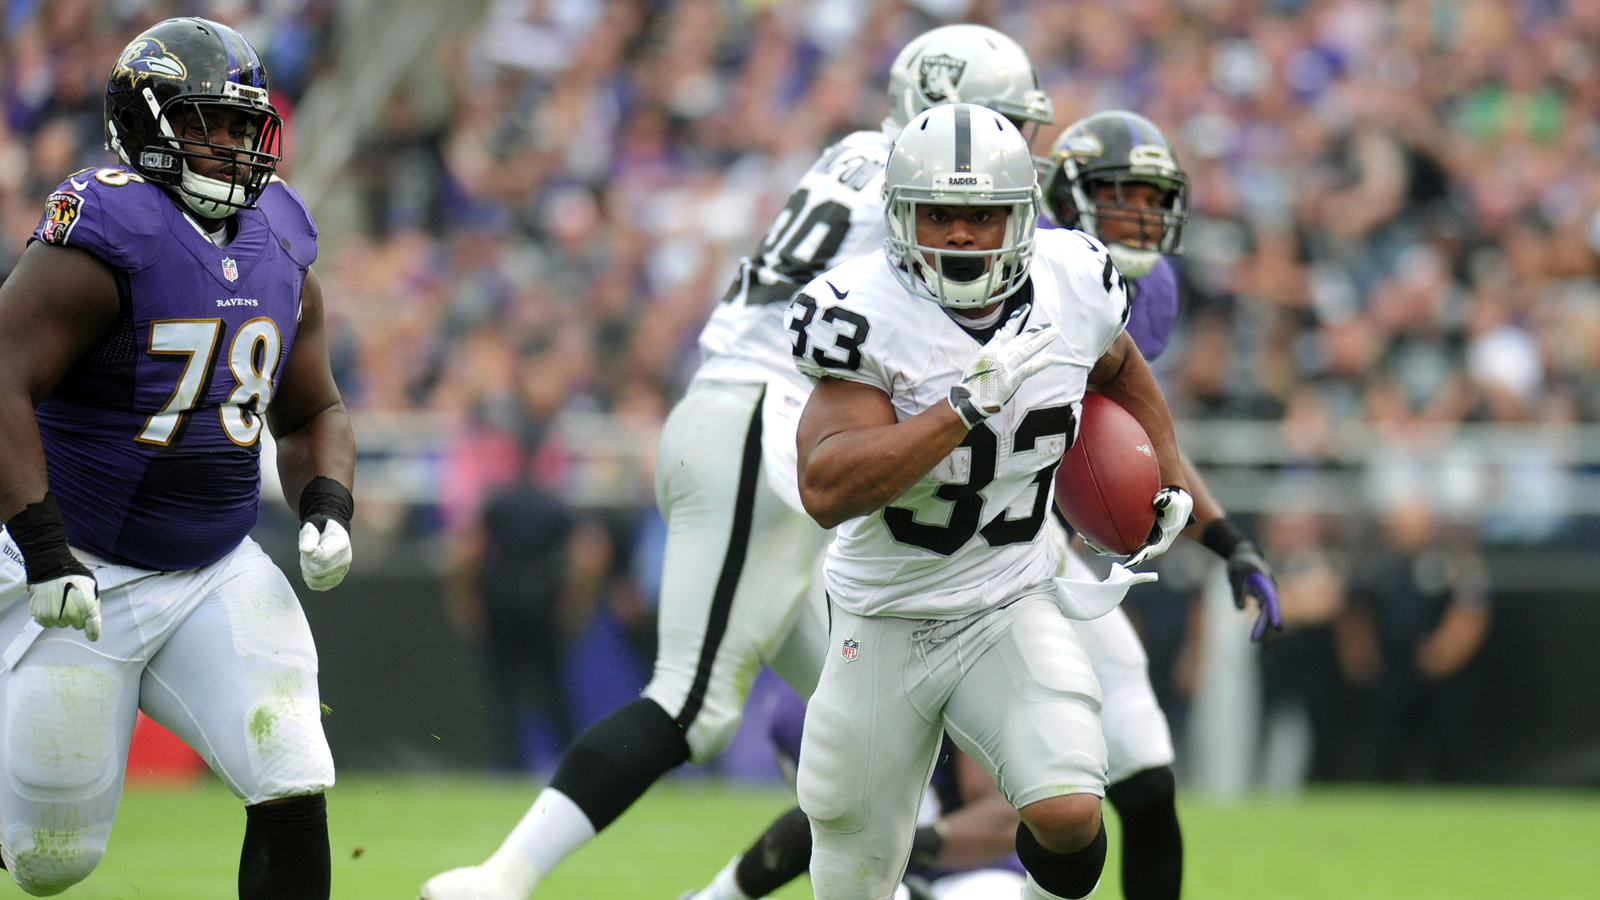 With Murray limping, Raiders turning to pair of rookie RBs